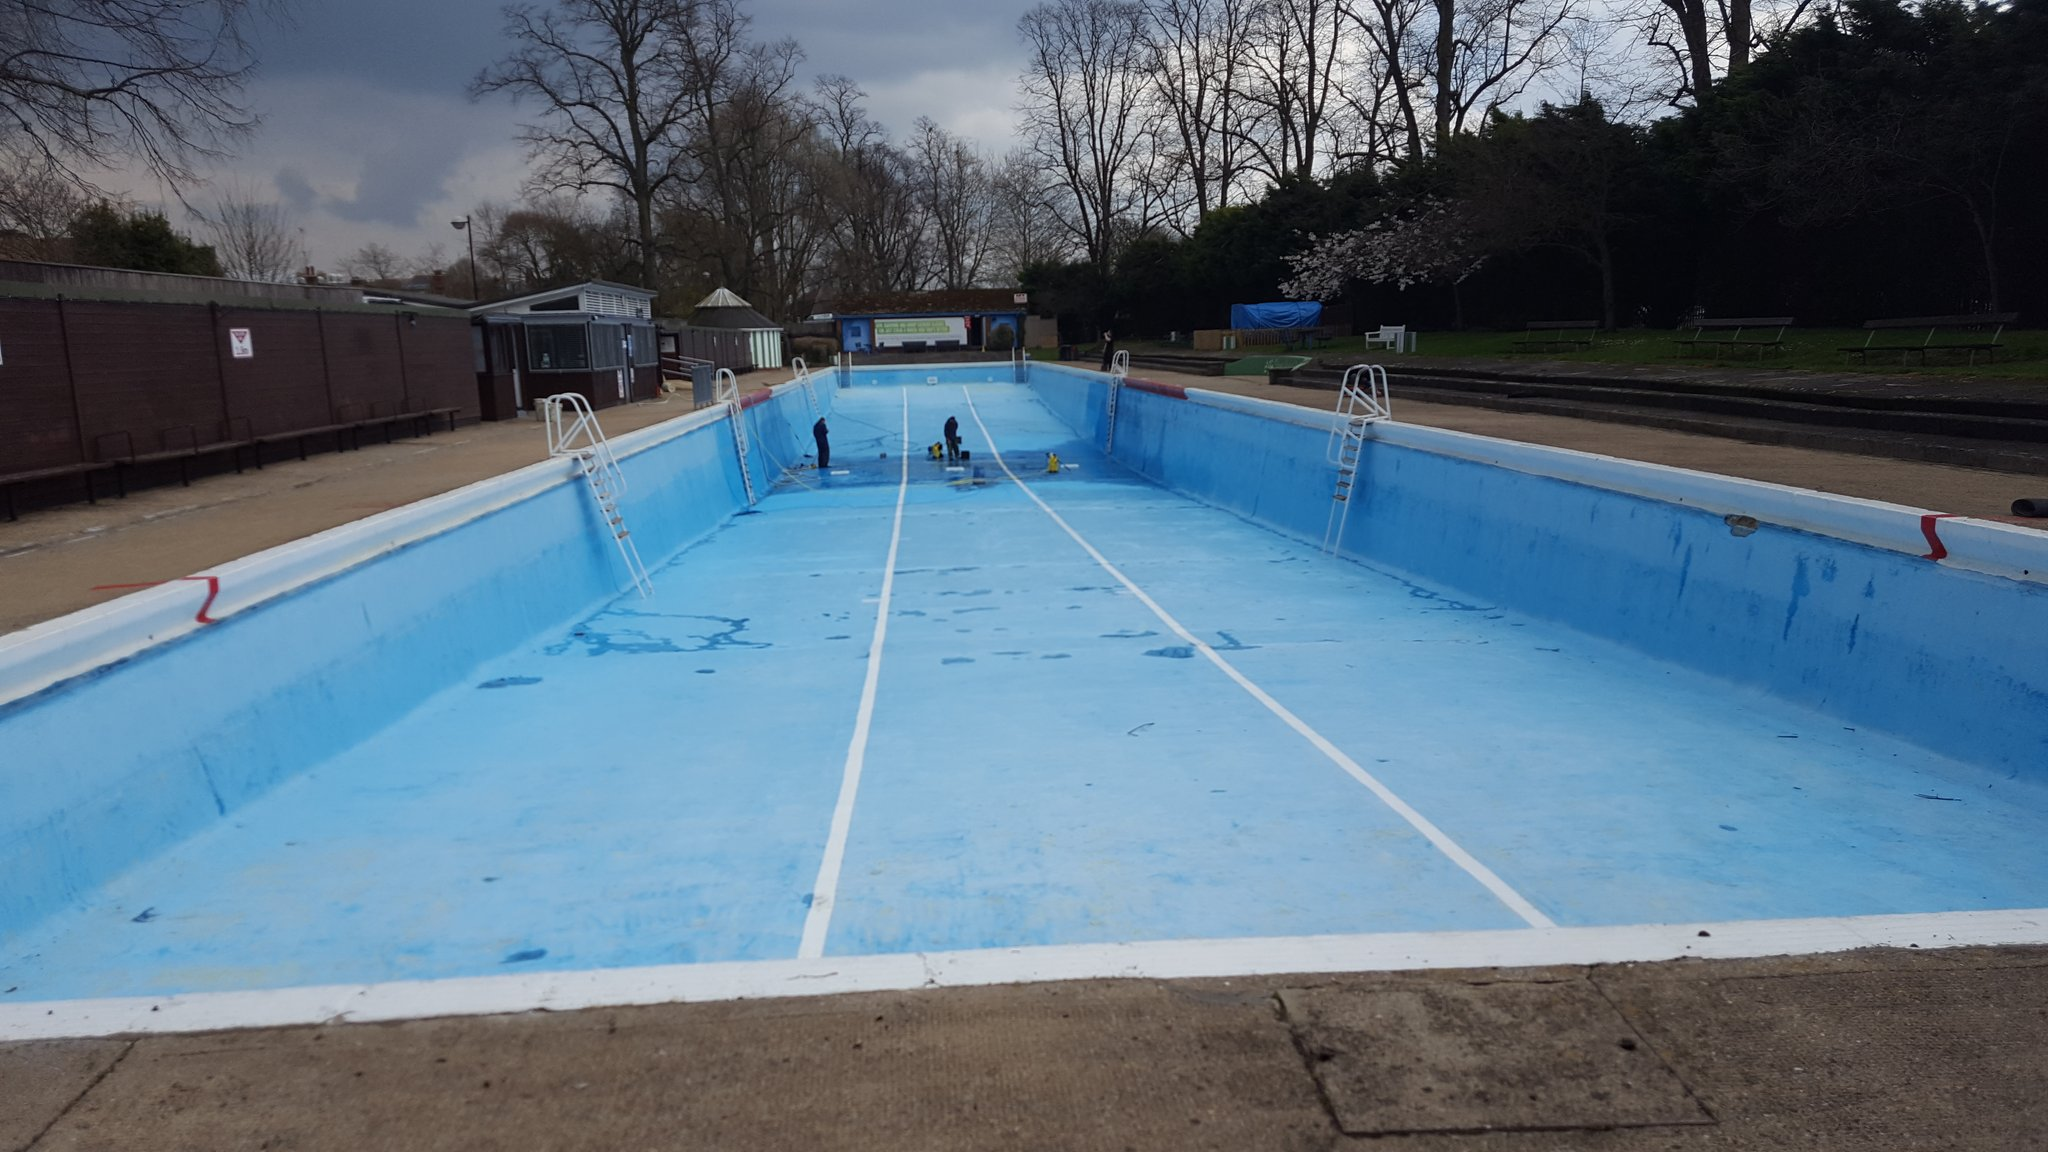 Jesus Green Lido On Twitter The Pool Is Finally Drained And Almost Cleaned Next Step Painting